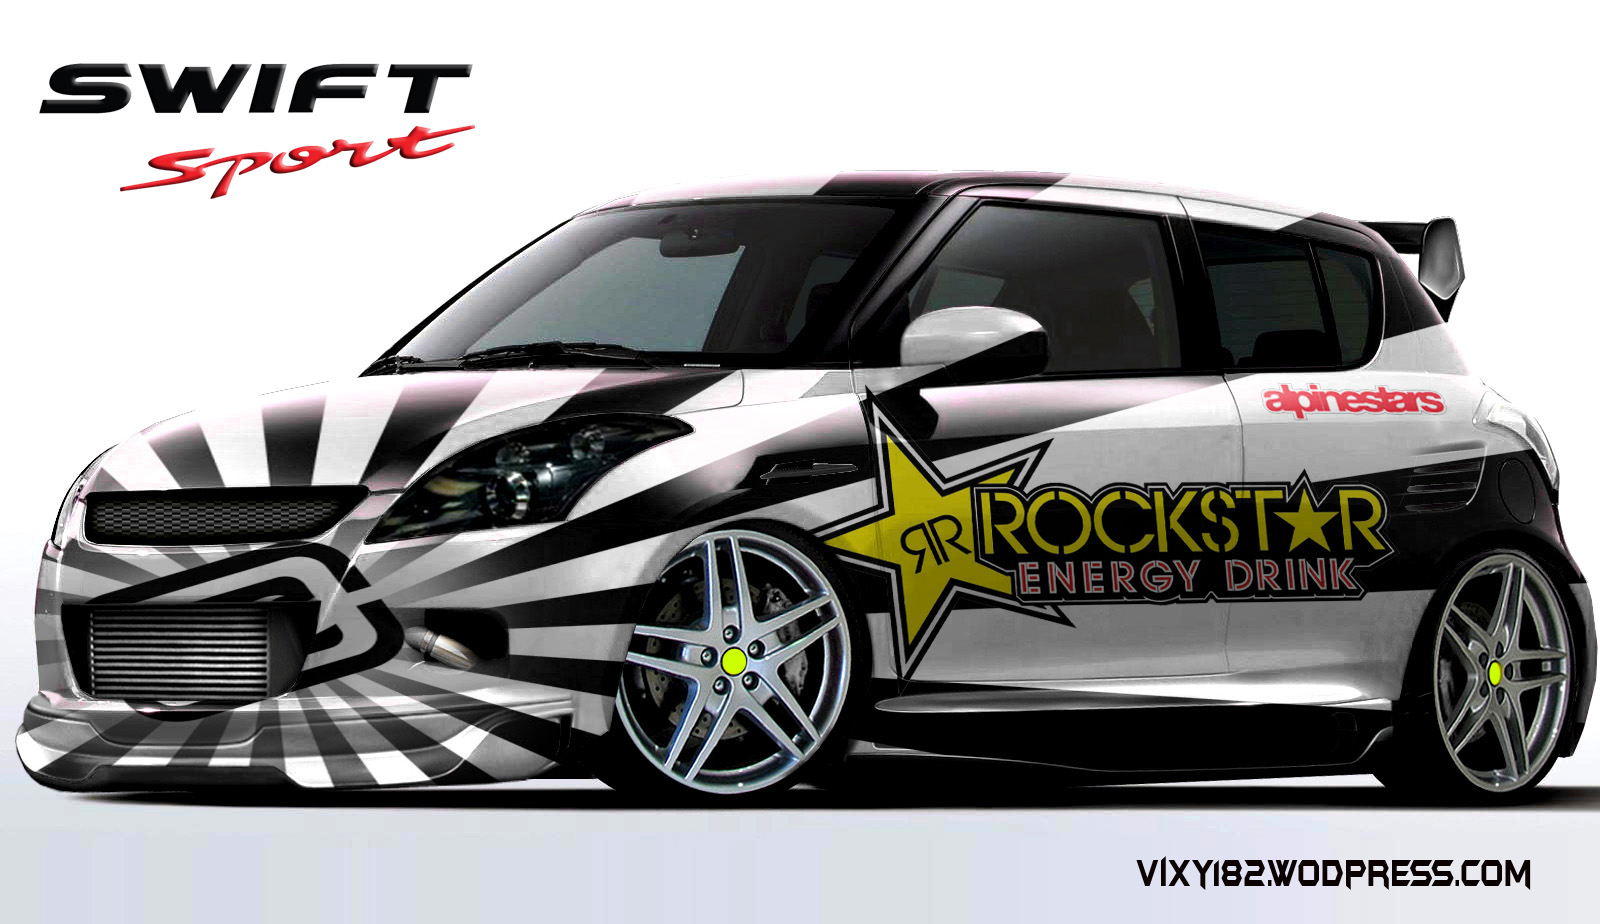 Design modifikasi mobil suzuki swift  Vixy182s Blog